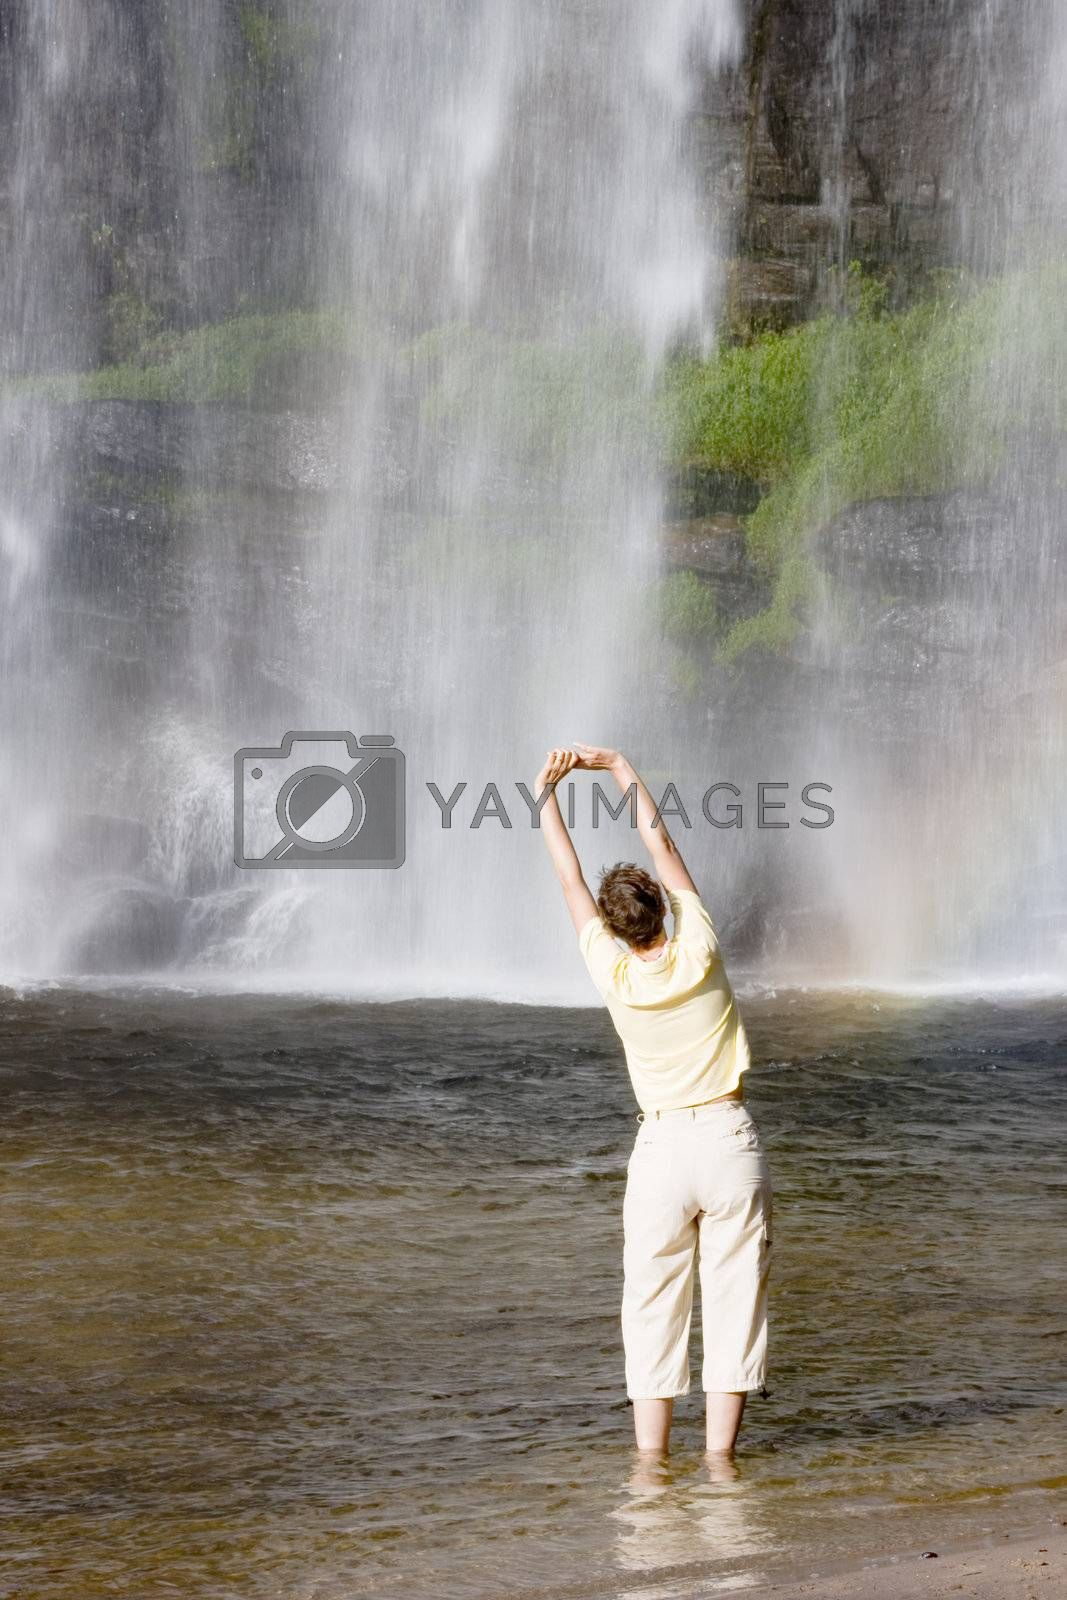 Woman doing gymnastics in front of a tropical waterfall